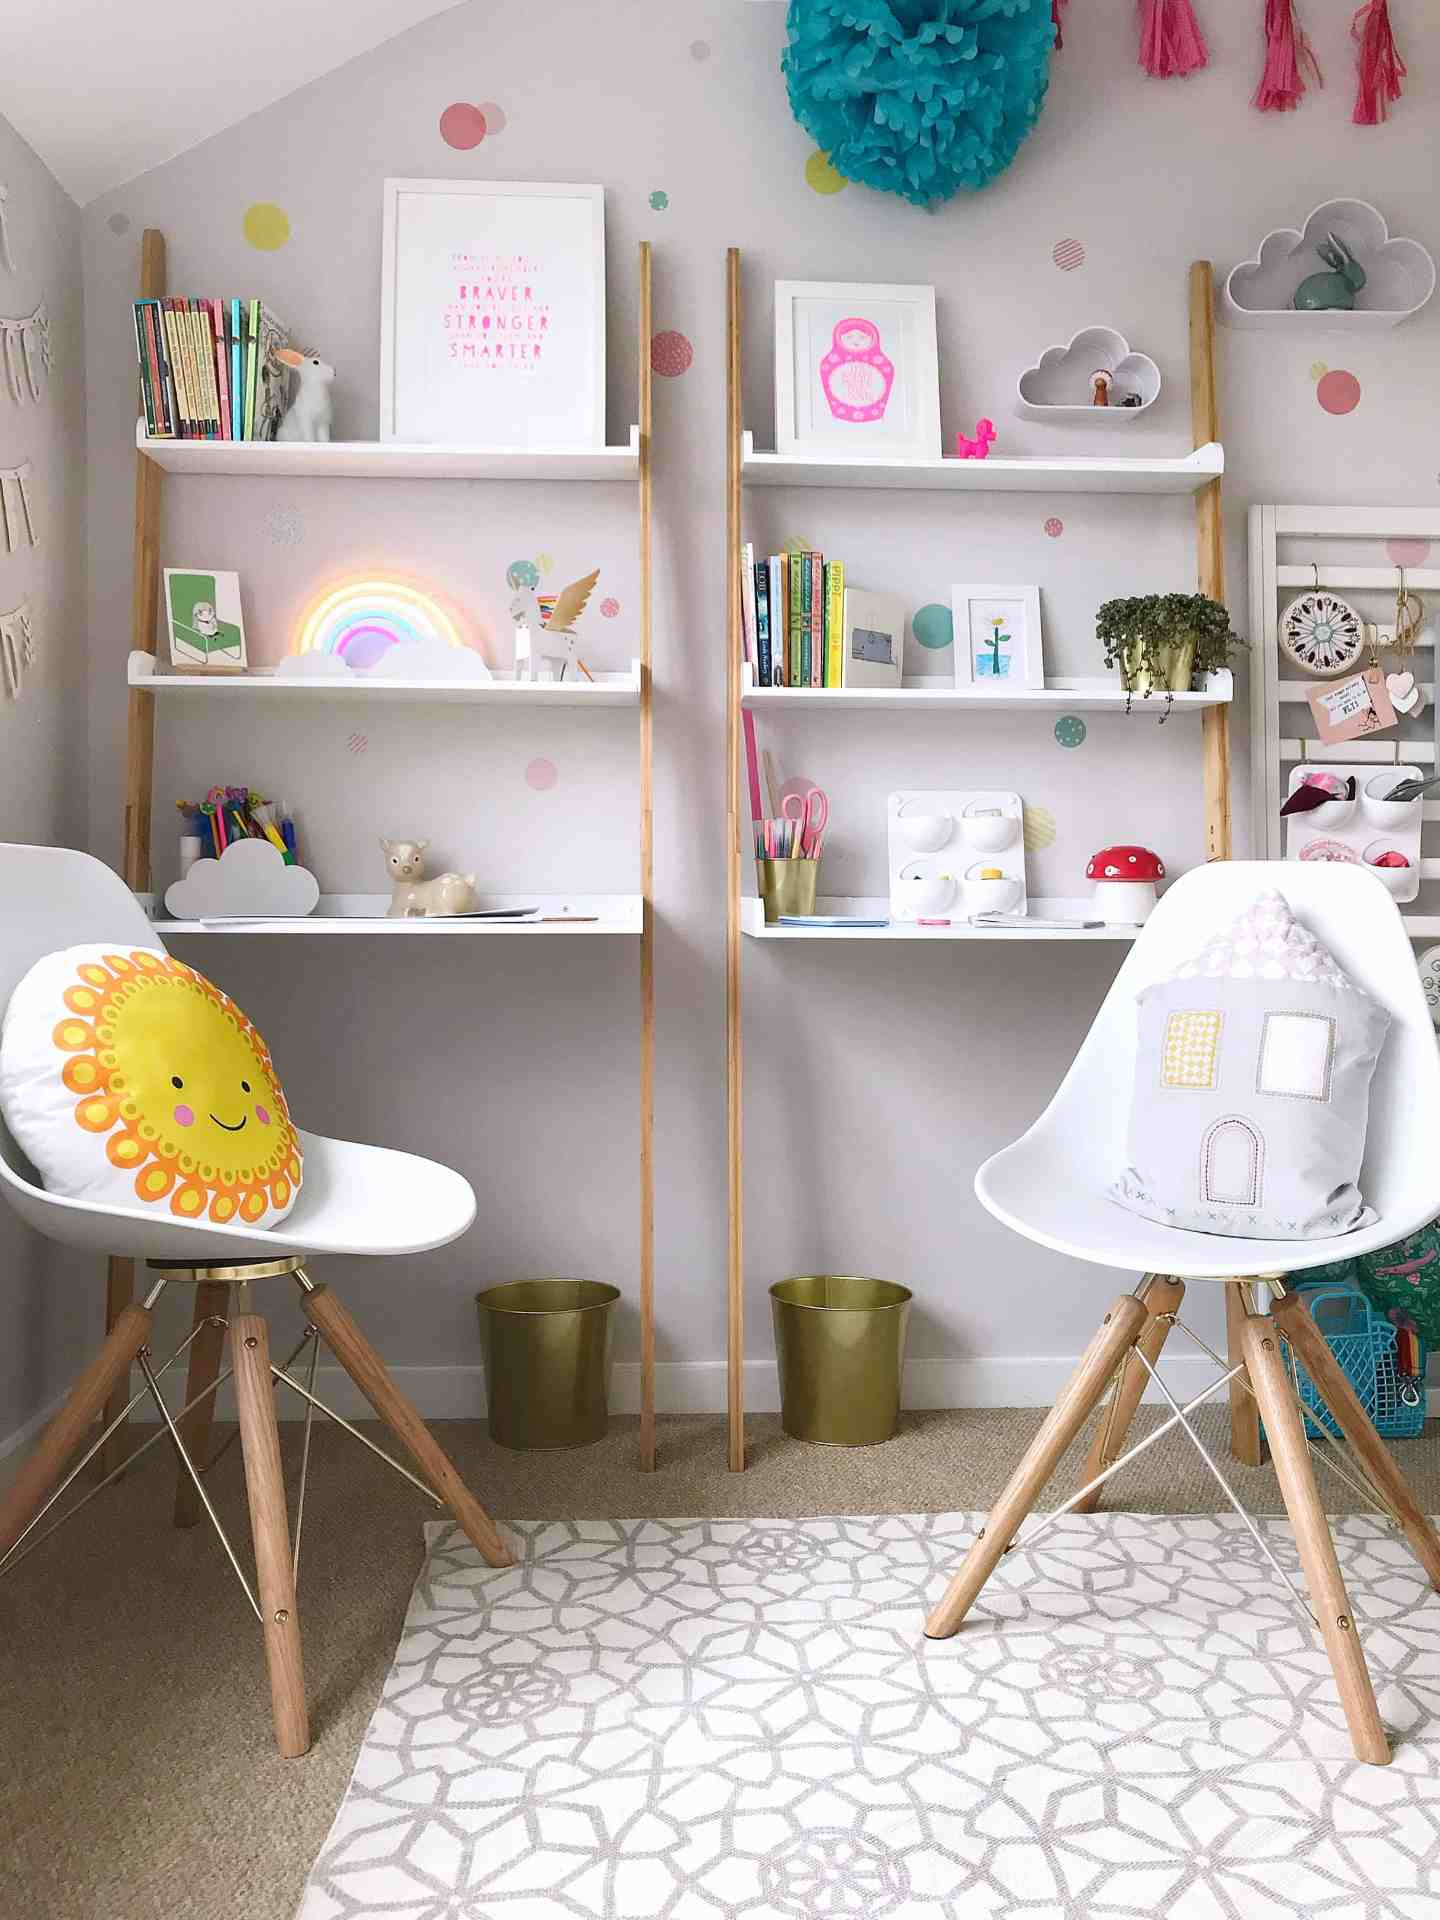 Matching child-friendly, space-saving desks from Futon Company with white Cult Furniture chairs